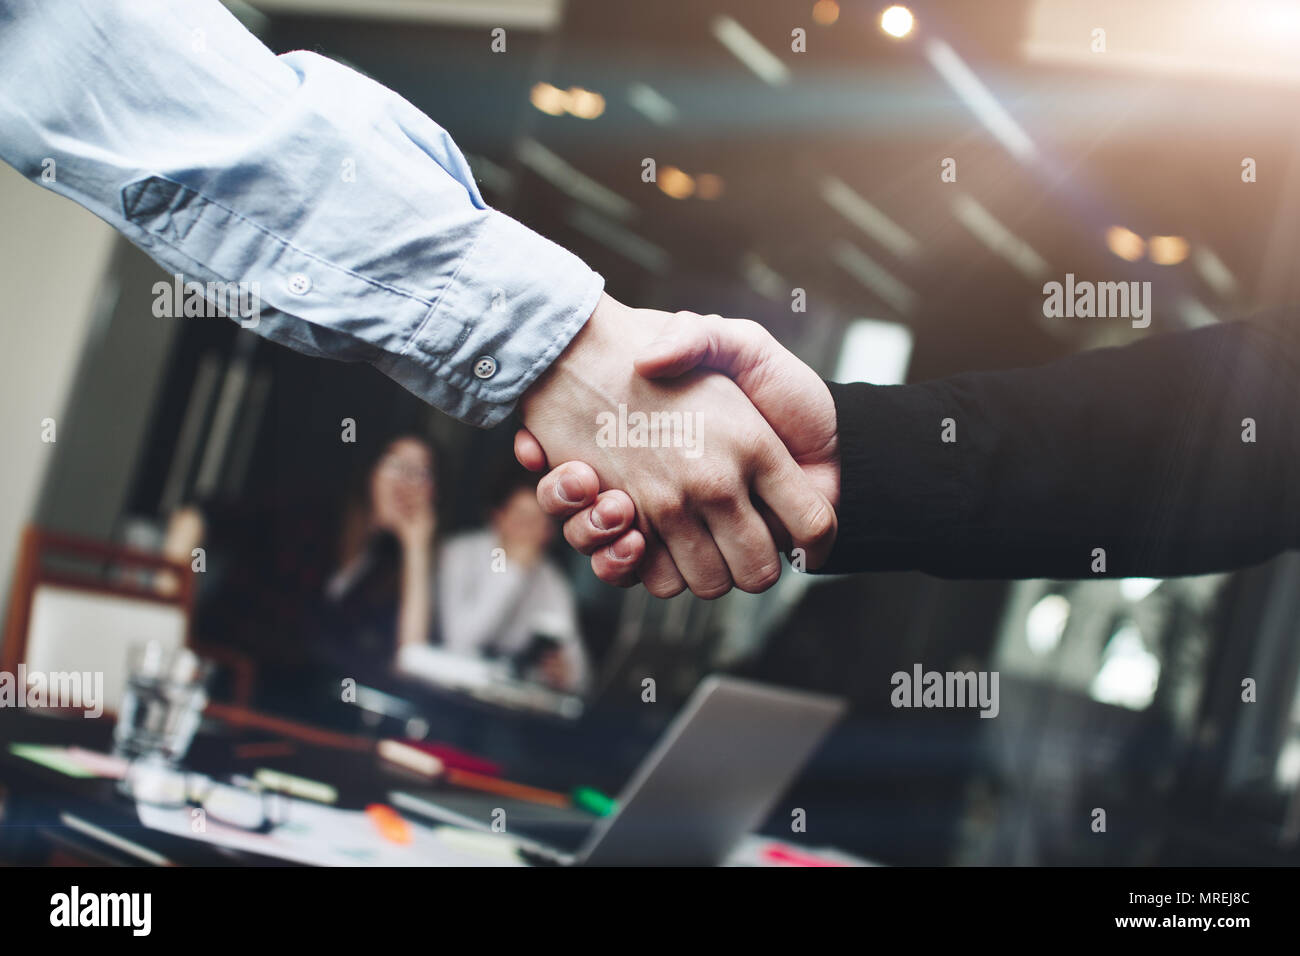 Two men handshakes after important business conference in modern loft room - Stock Image